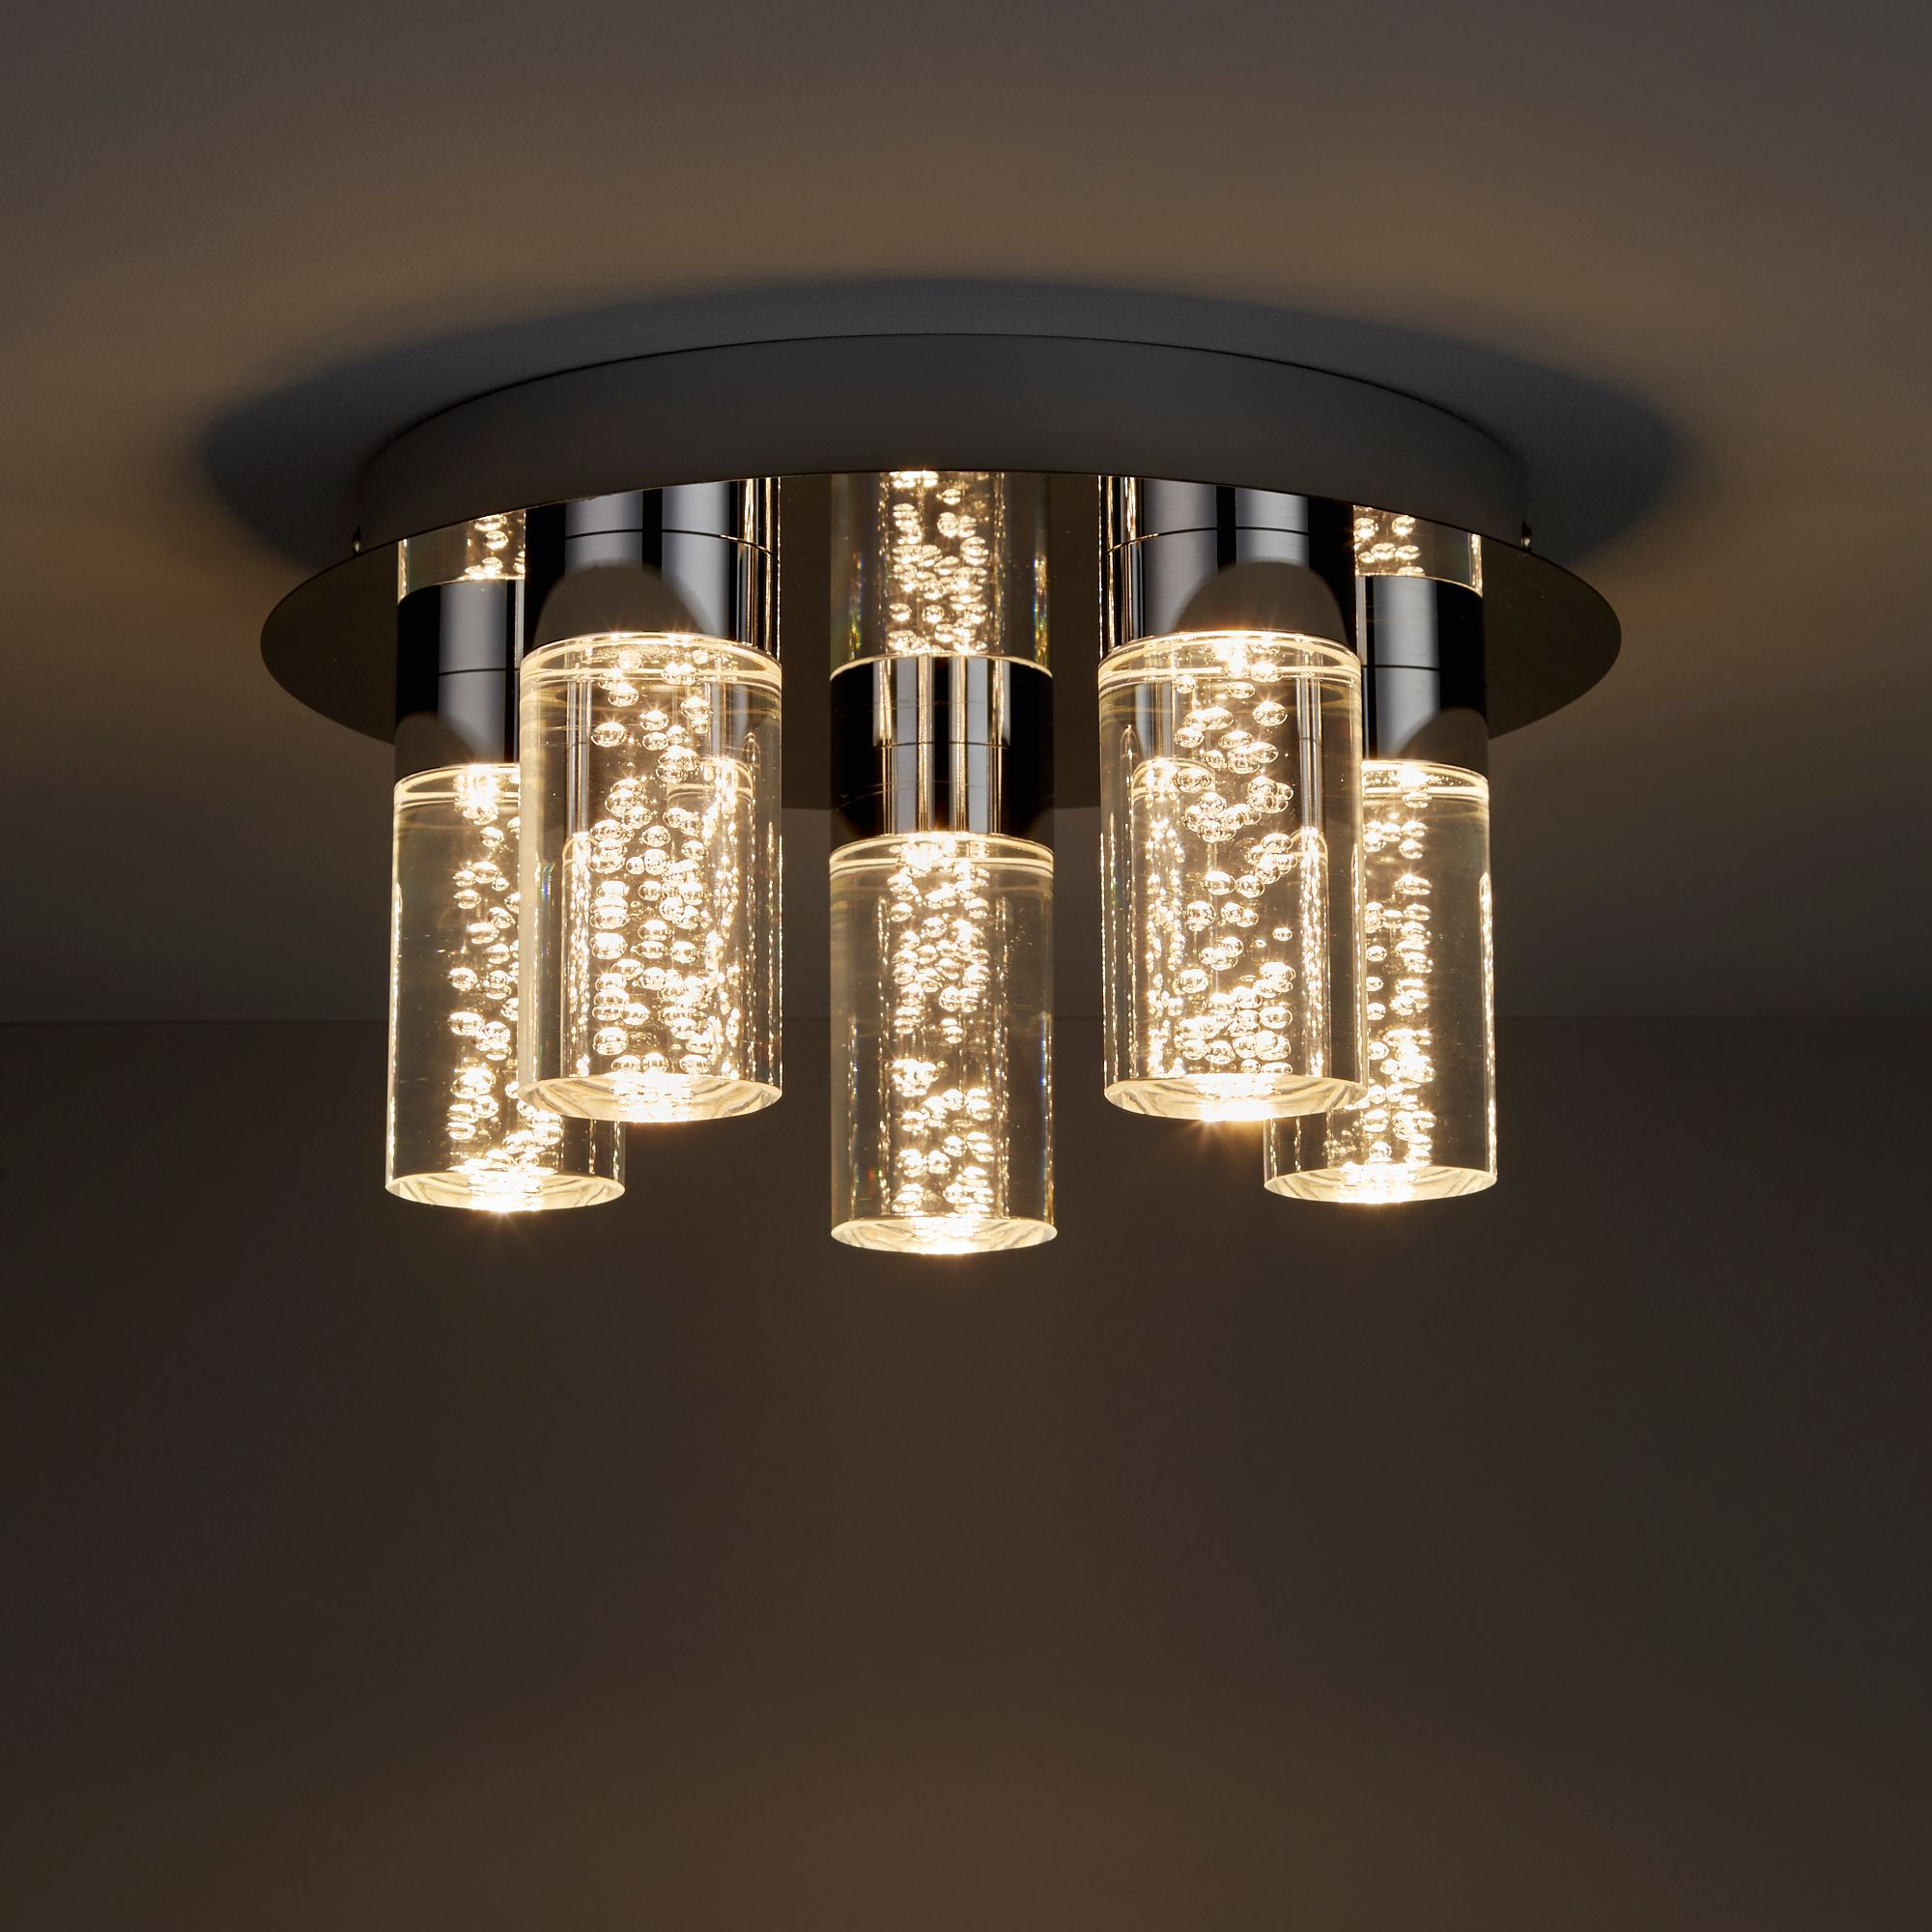 Hubble Chrome effect 5 Lamp Bathroom ceiling light  Departments  DIY at BQ